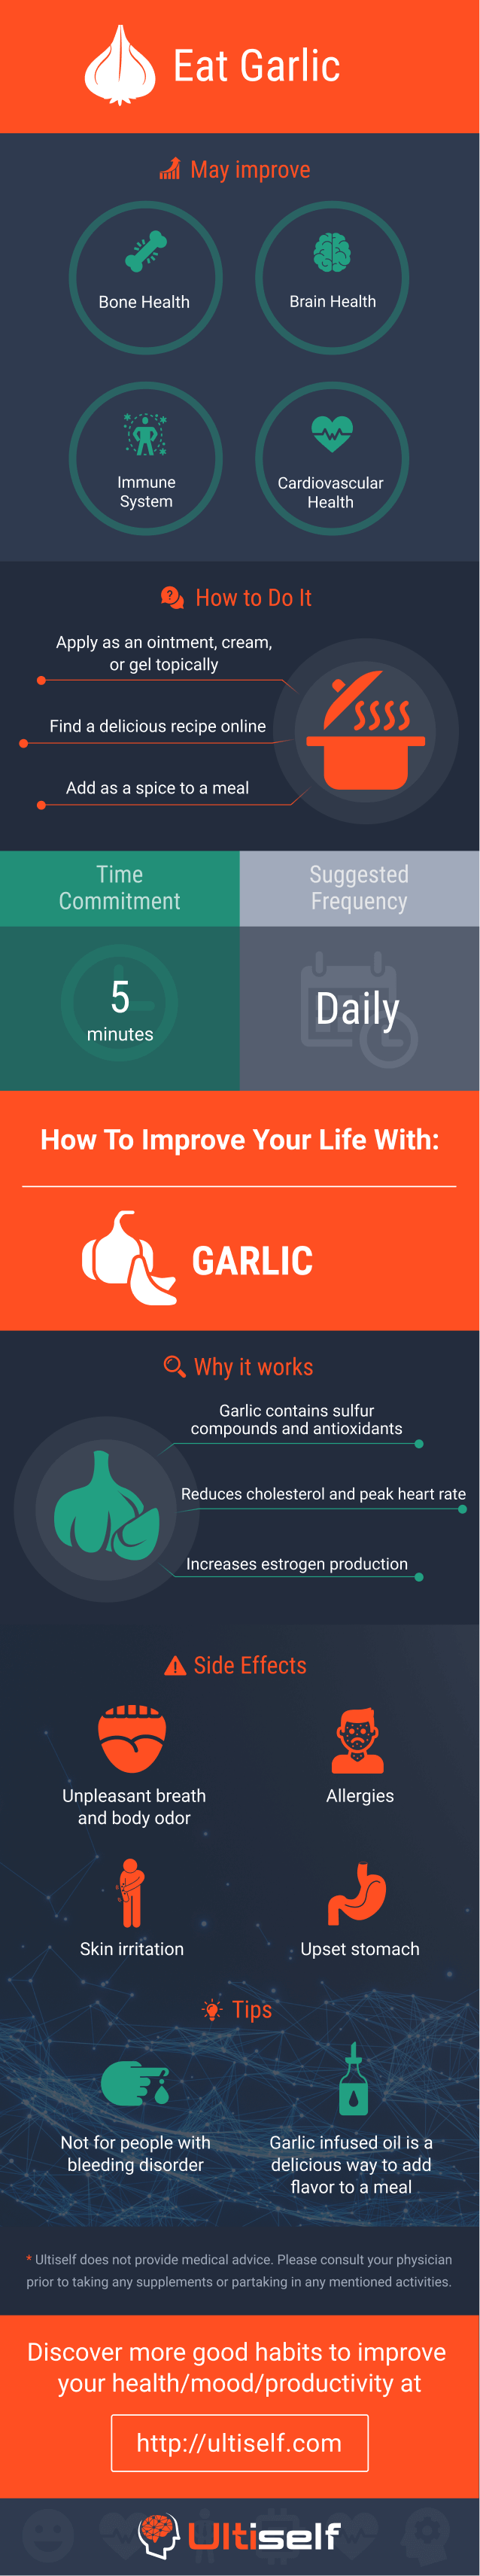 Eat Garlic infographic